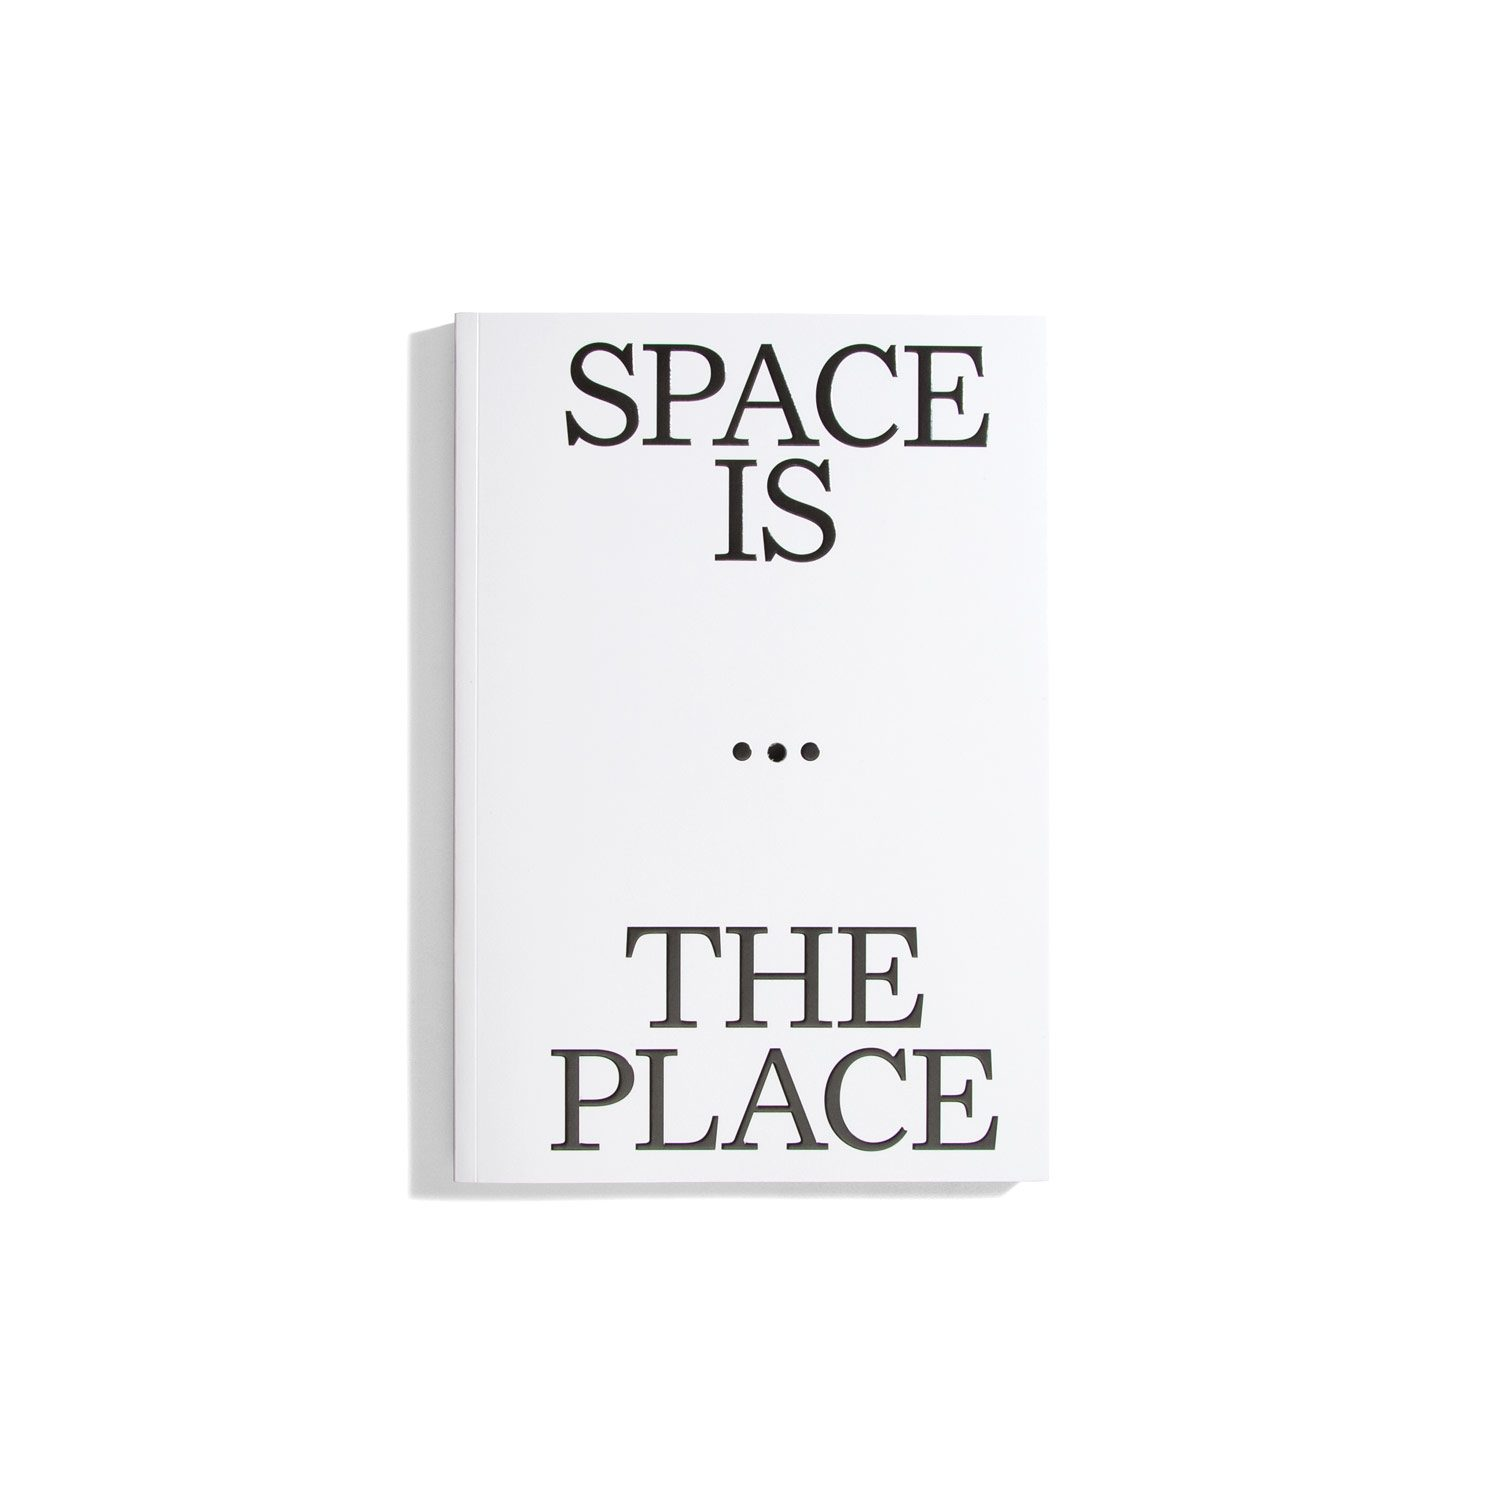 Space Is The Place - Current Reflections on Art and Architecture